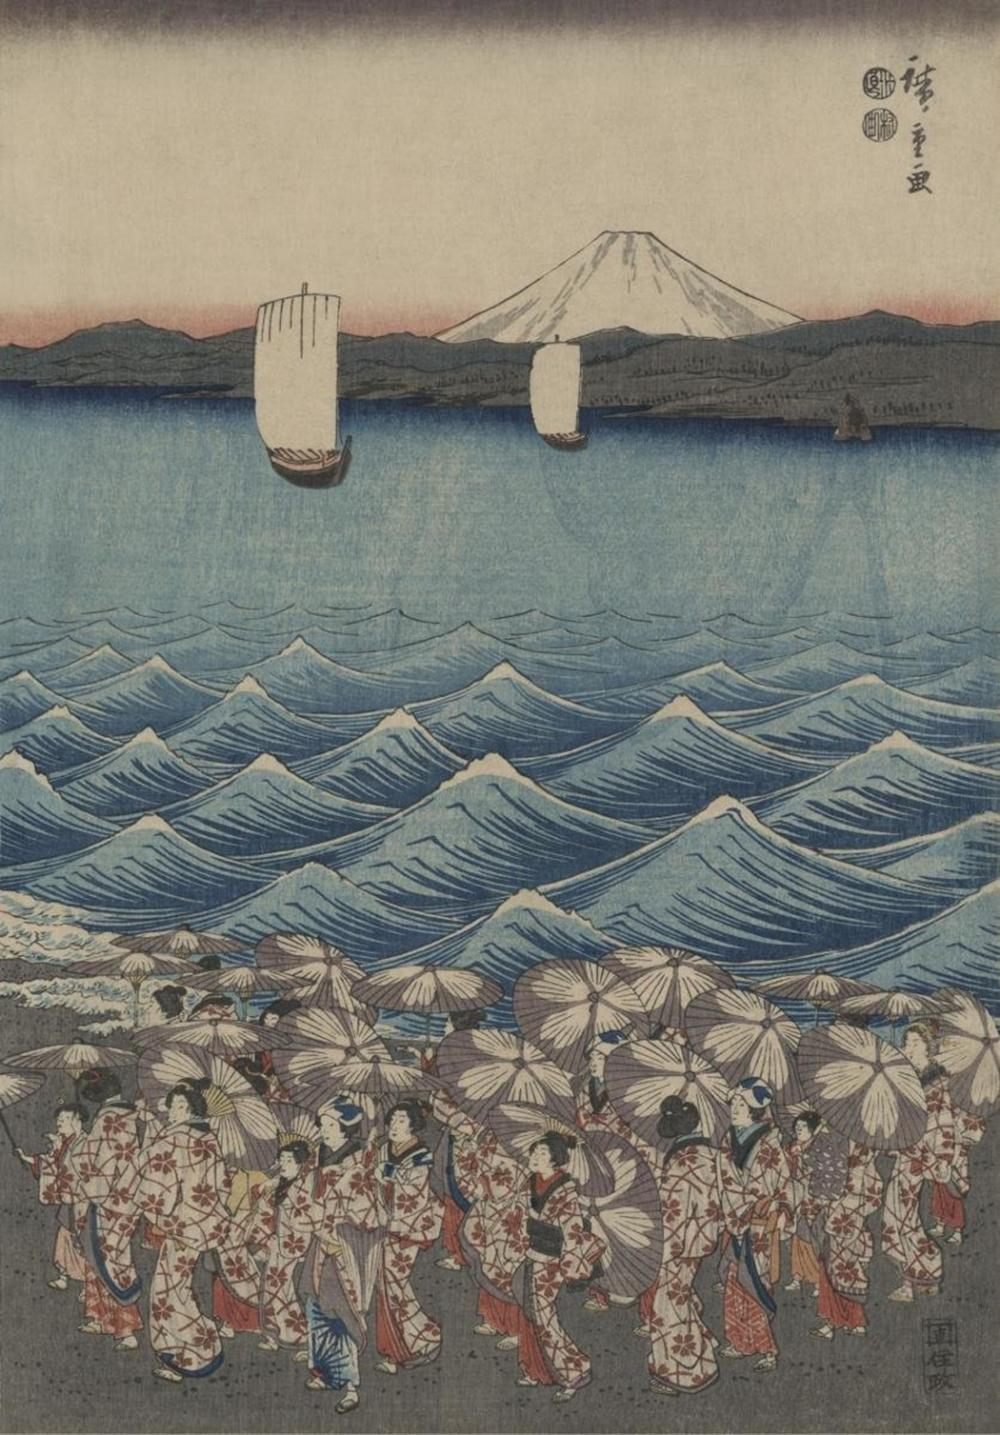 ANDO HIROSHIGE - OPENING CELEBRATION OF BENZAITEN SHRINE AT ENOSHIMA IN SOSHU.